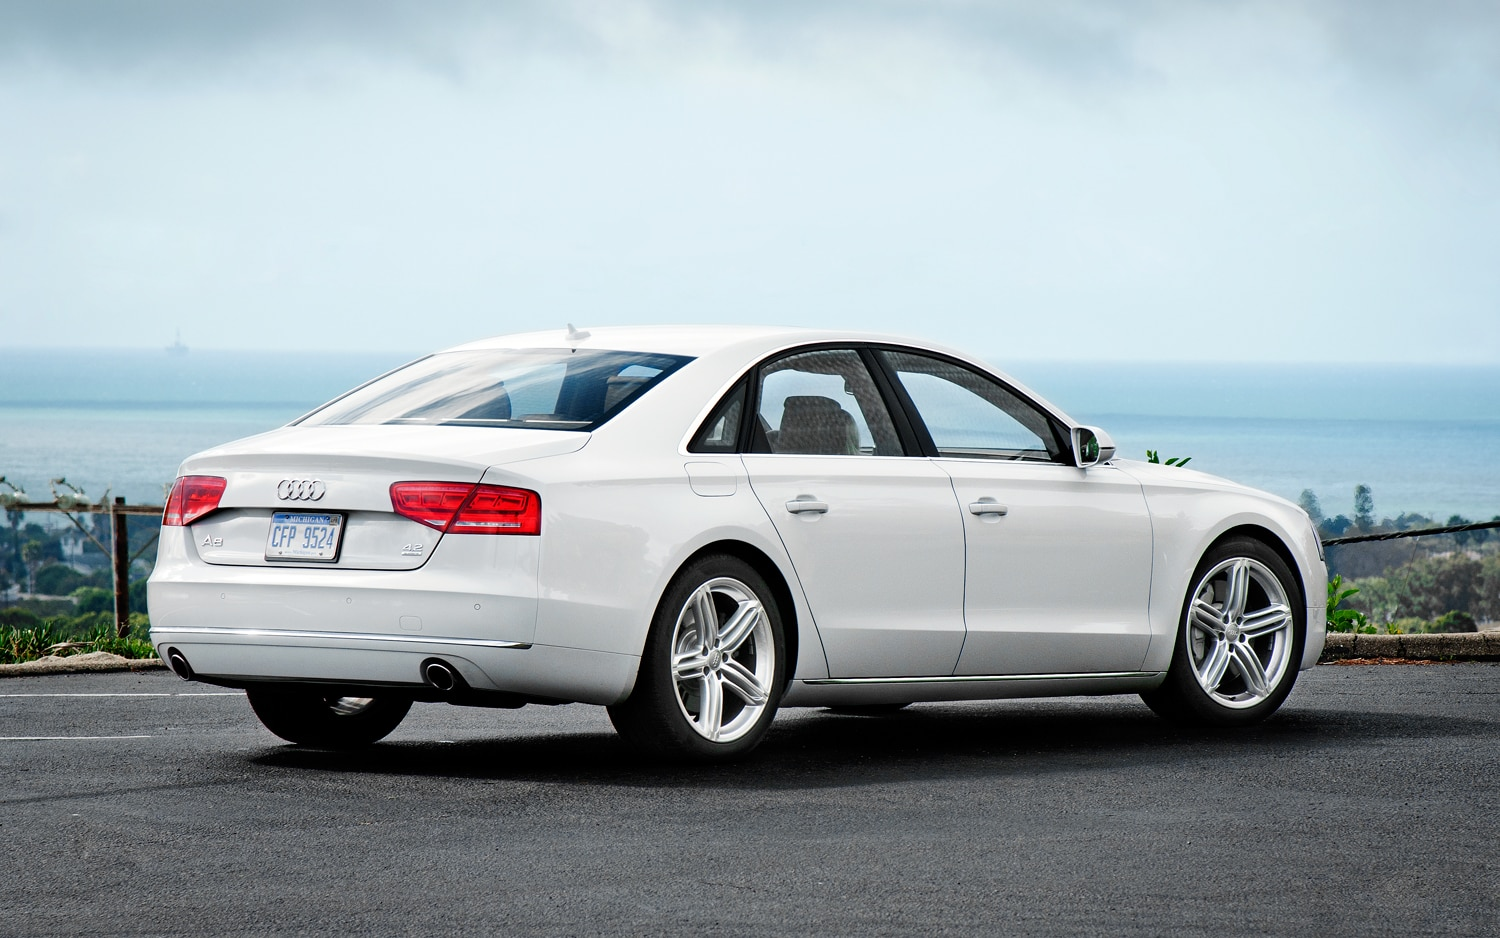 Audi r8 0 to 60 time 14